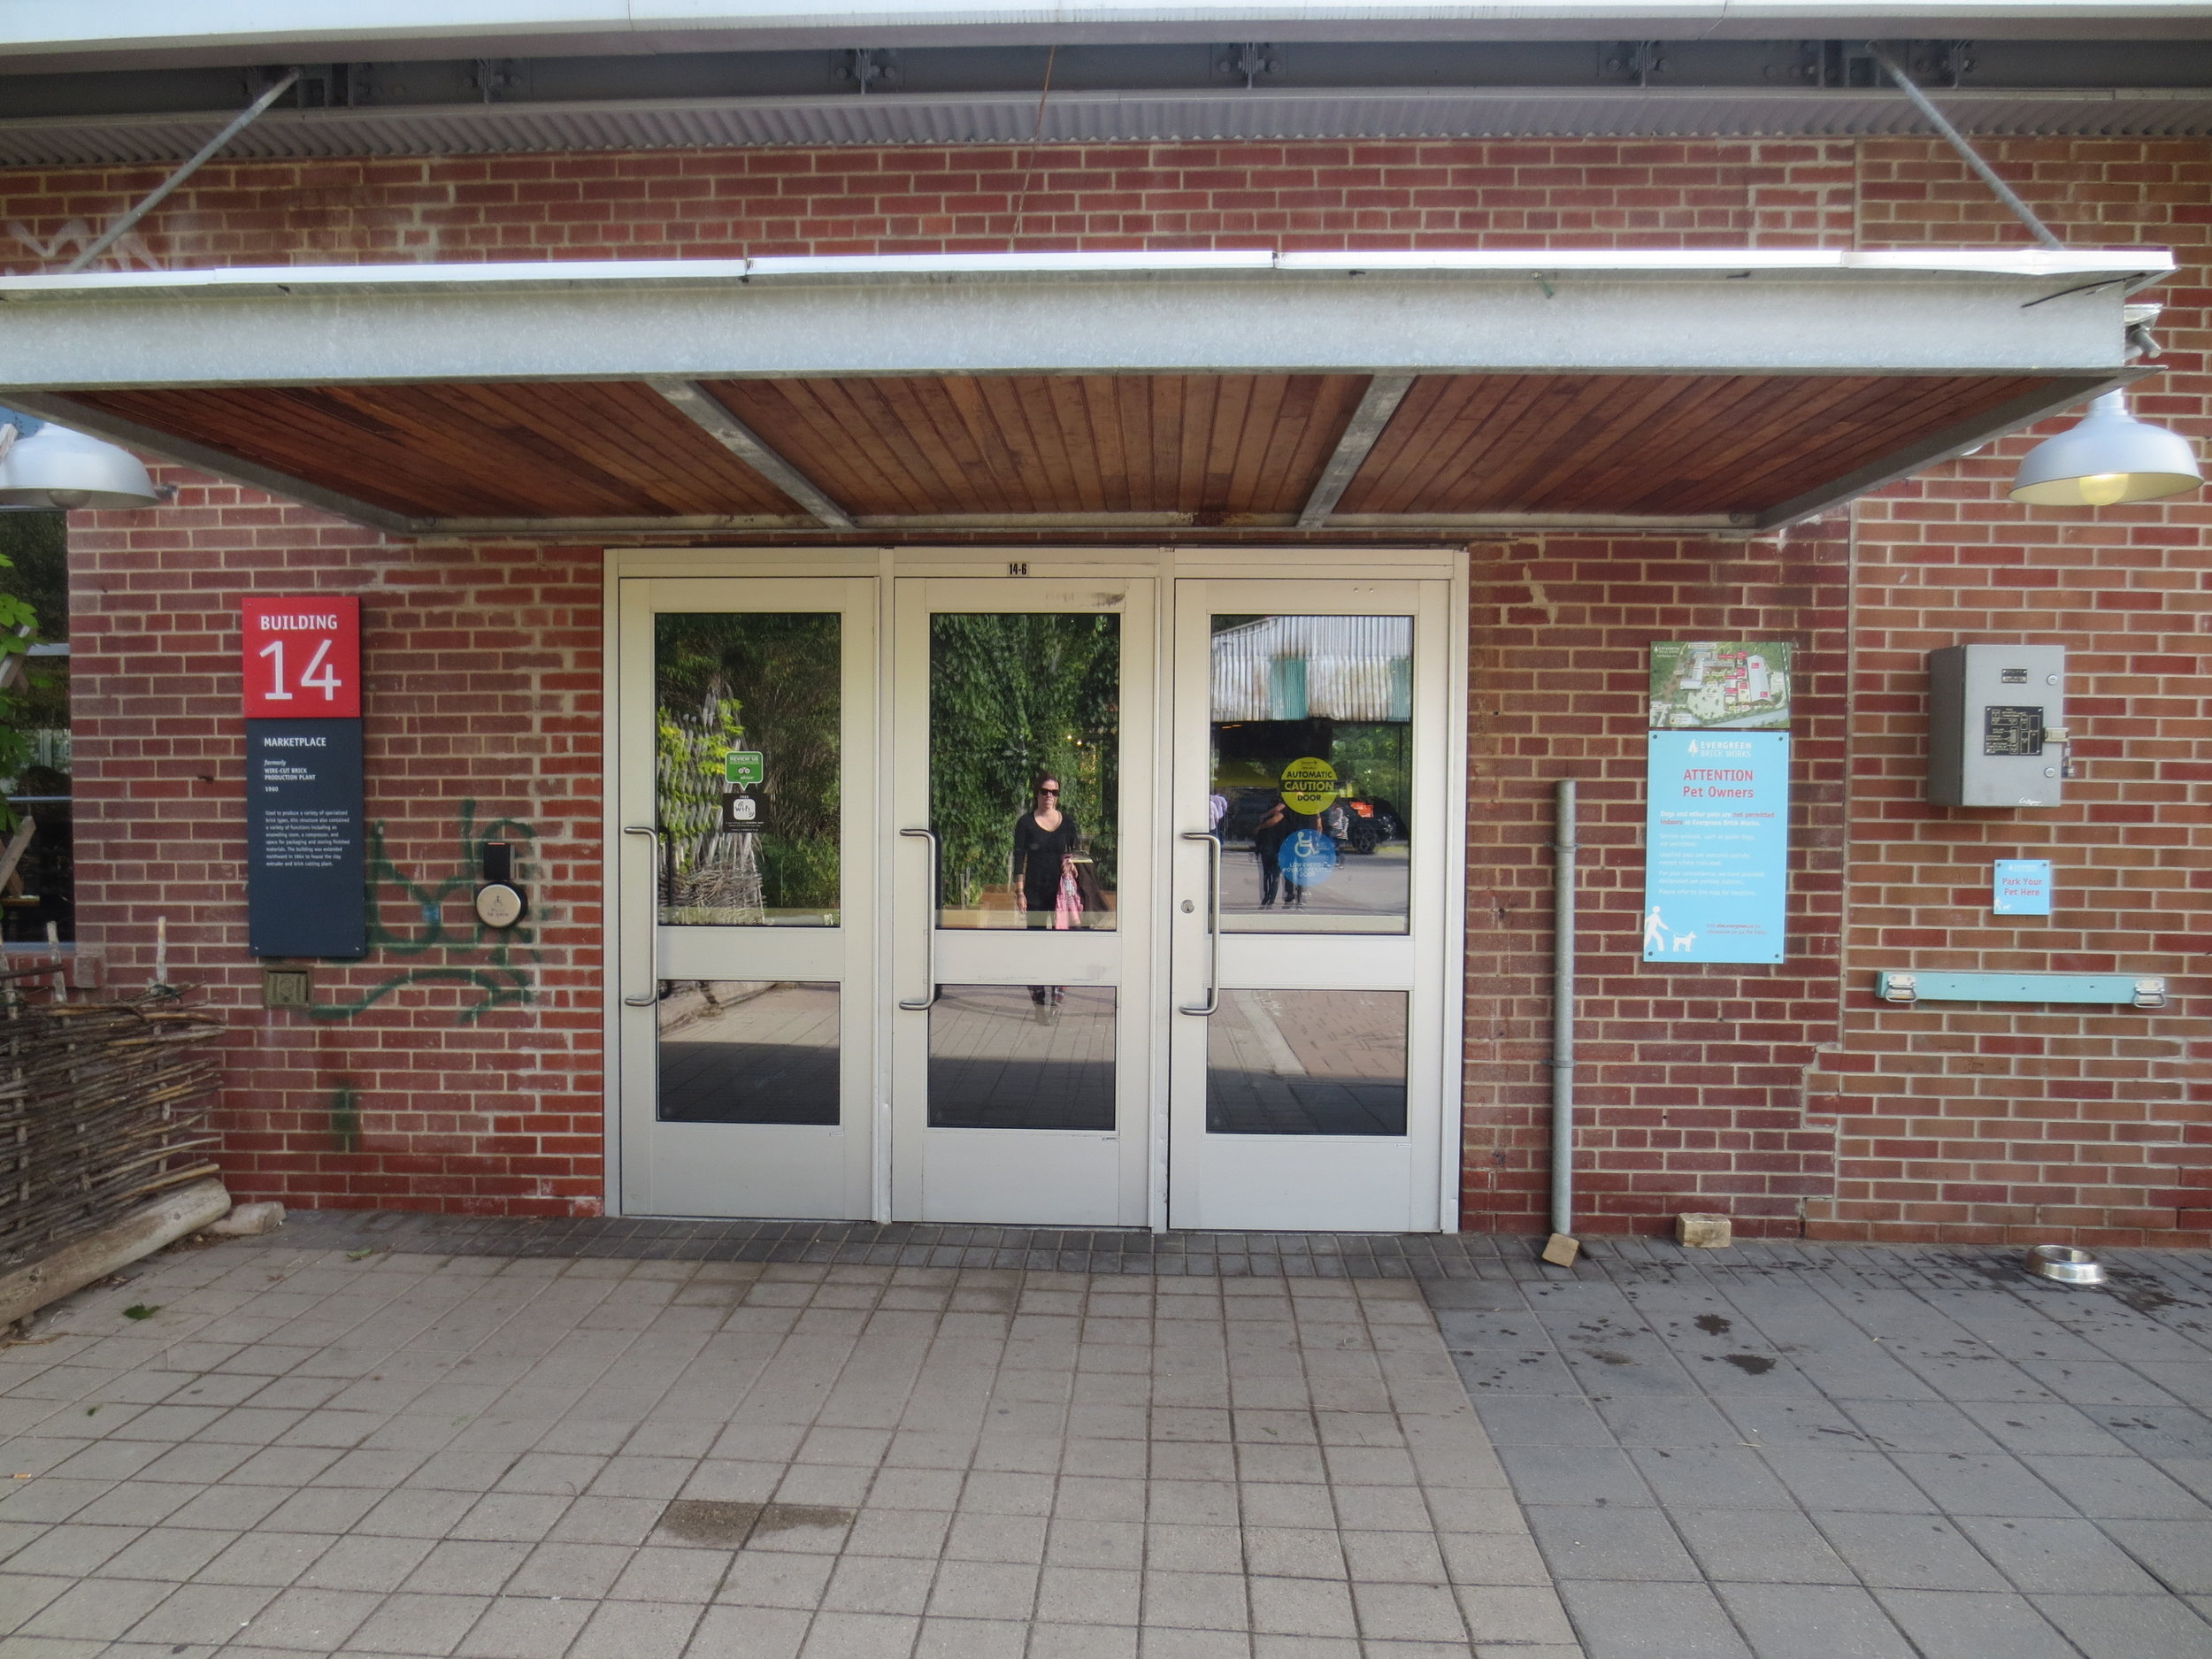 Picture of the main entrance showing automatic button